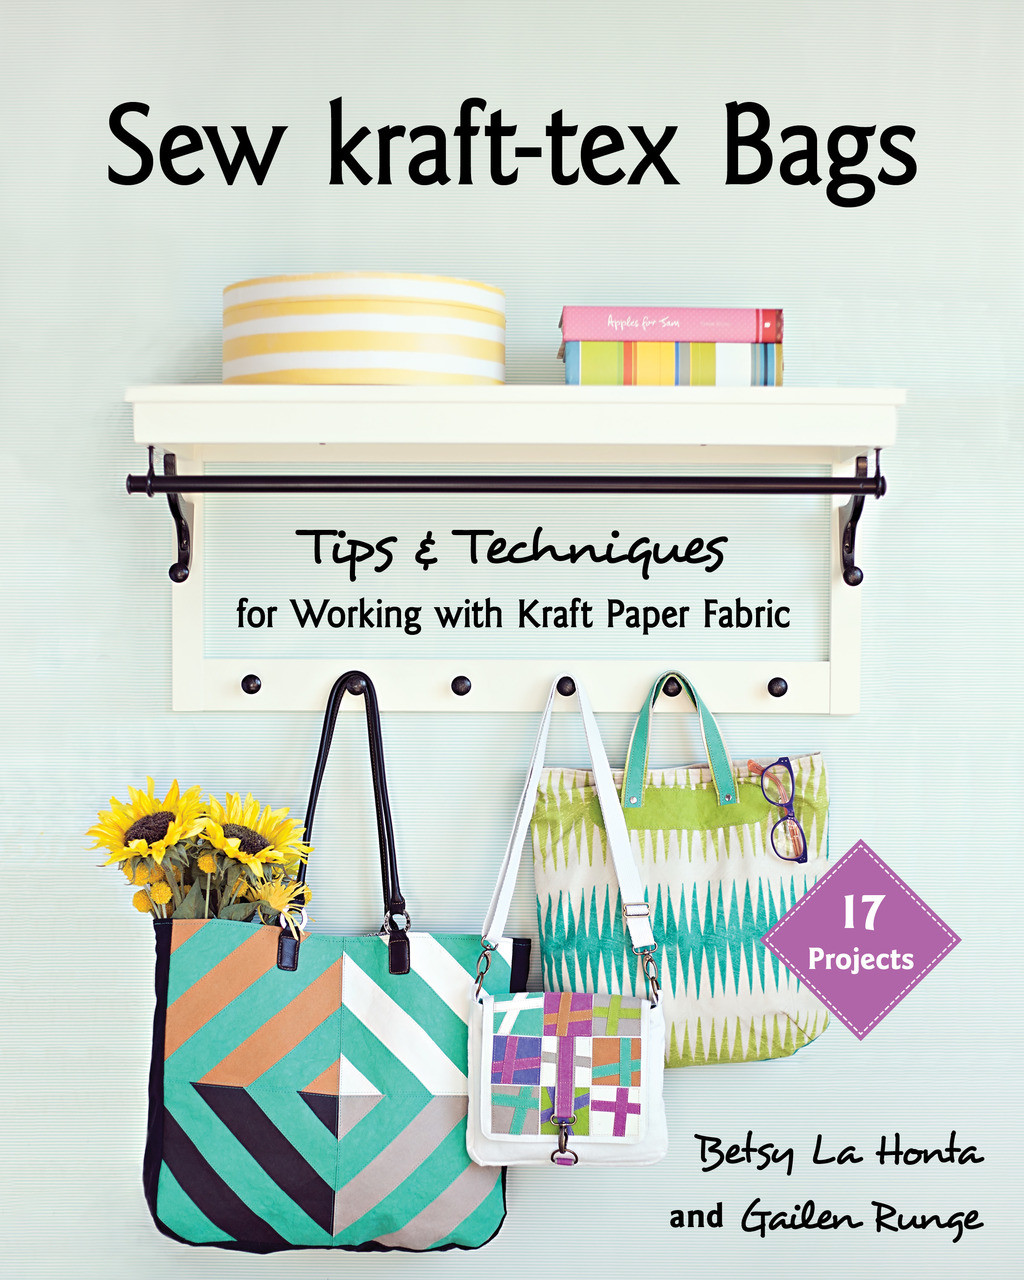 It's the hot new substrate that wears like leather but sews up like fabric—create more with kraft-tex! This game-changing material is the perfect accent for wallets, totes, and purses. Experts Betsy LaHonta and Gailen Runge teach you everything about sewing with kraft-tex. Get your needle know-how, sew the right seam allowances, and practice turning techniques. Popular bag designers share 19 patterns for all skill levels, from a simple clutch to a roomy travel bag.